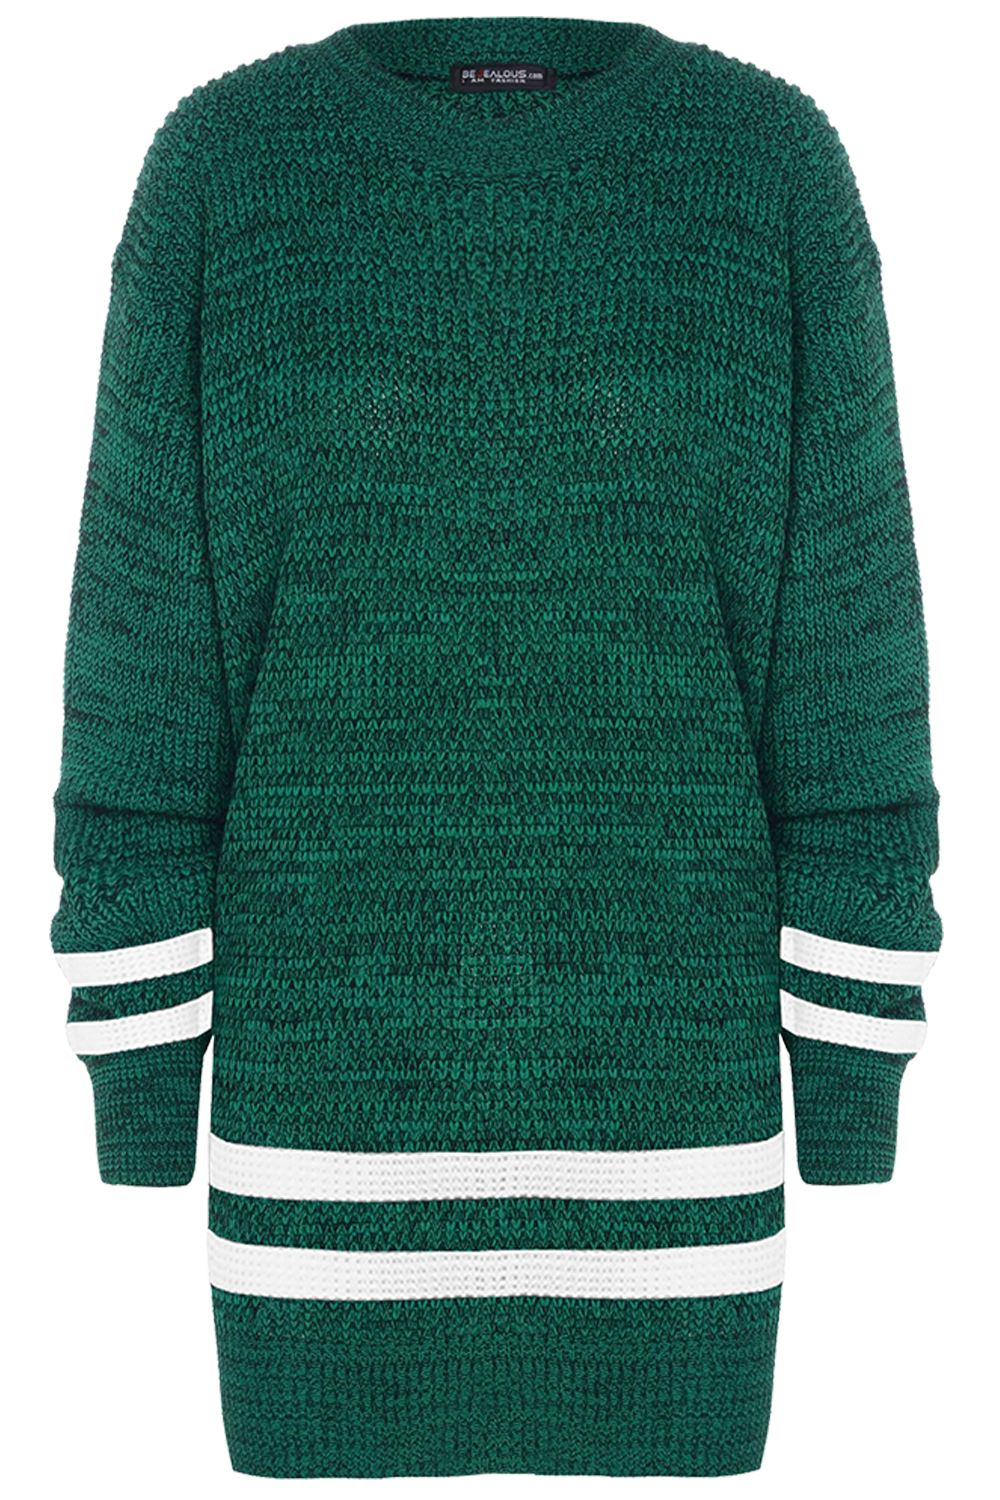 """12 Best Chunky Knit Sweater Patterns. 1. The Bubbles Pull With this sweater, I already have my poms for the football game!Okay, not the same kind of """"pom-poms"""", but you have to admit that this wool sweater from Bettaknit would not only keep my warm and ."""